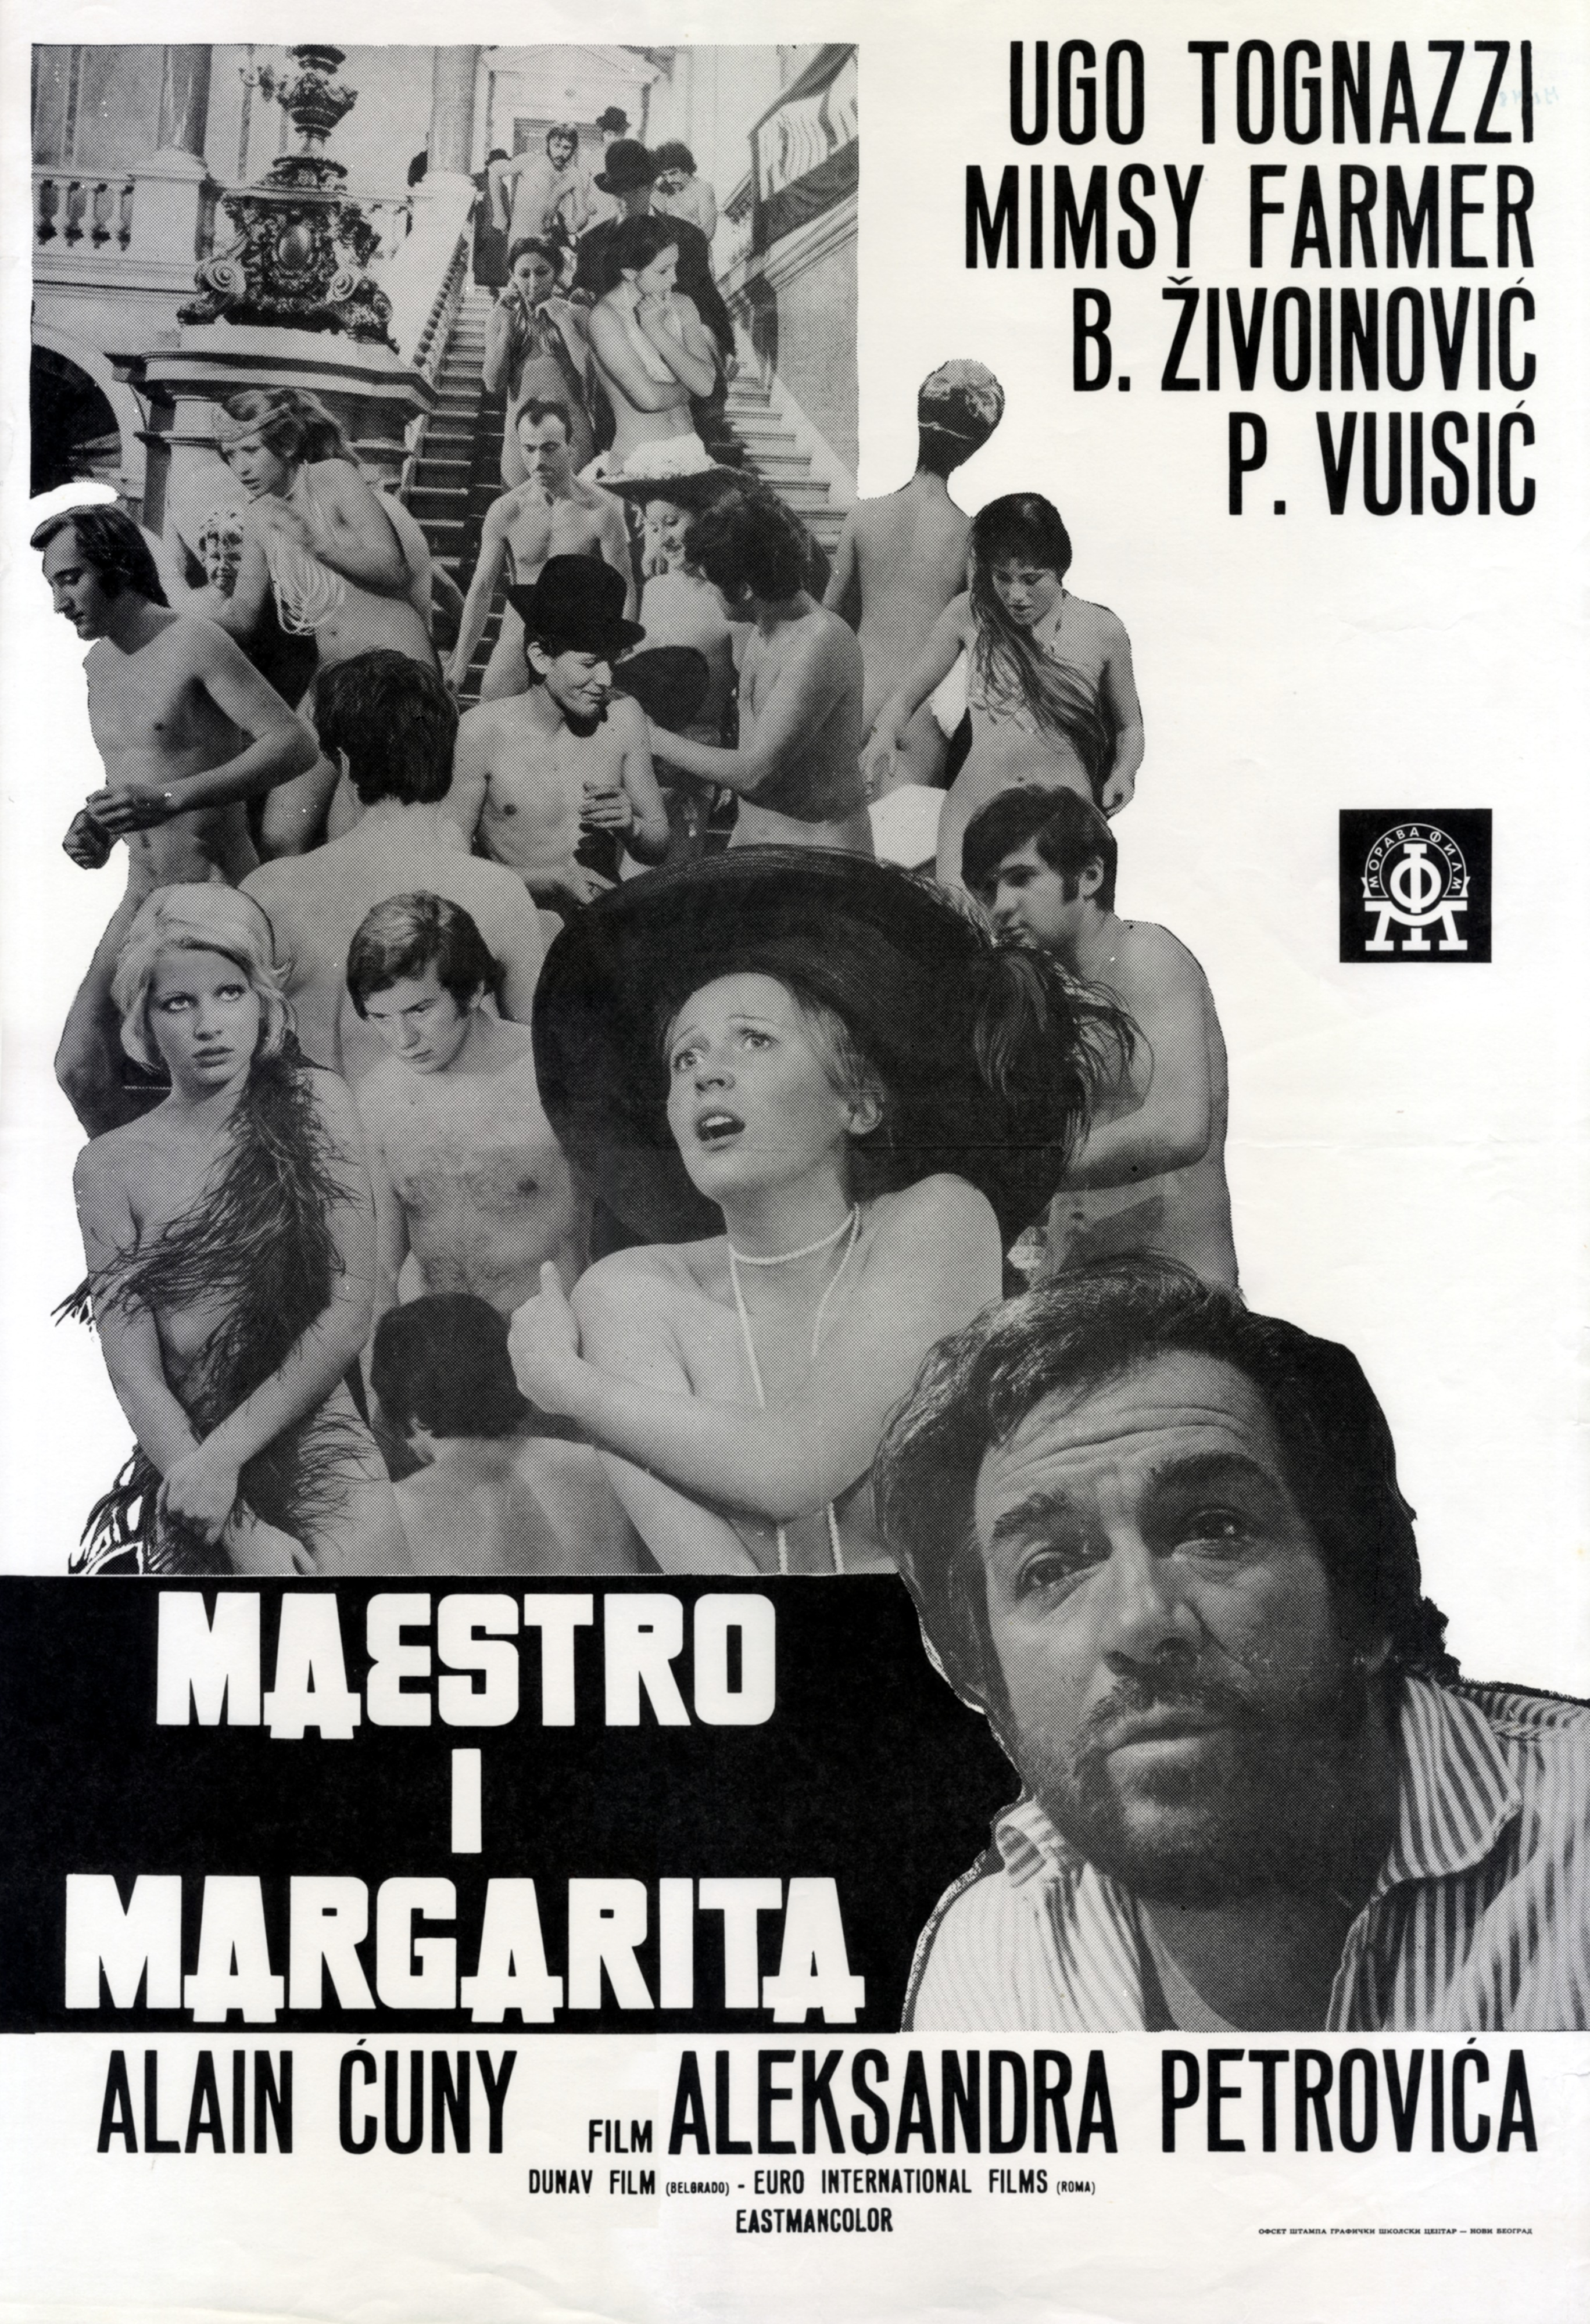 Poster advertising the feature film 'Maestro i Margarita', © Jugoslovenska kinoteka, Belgrade